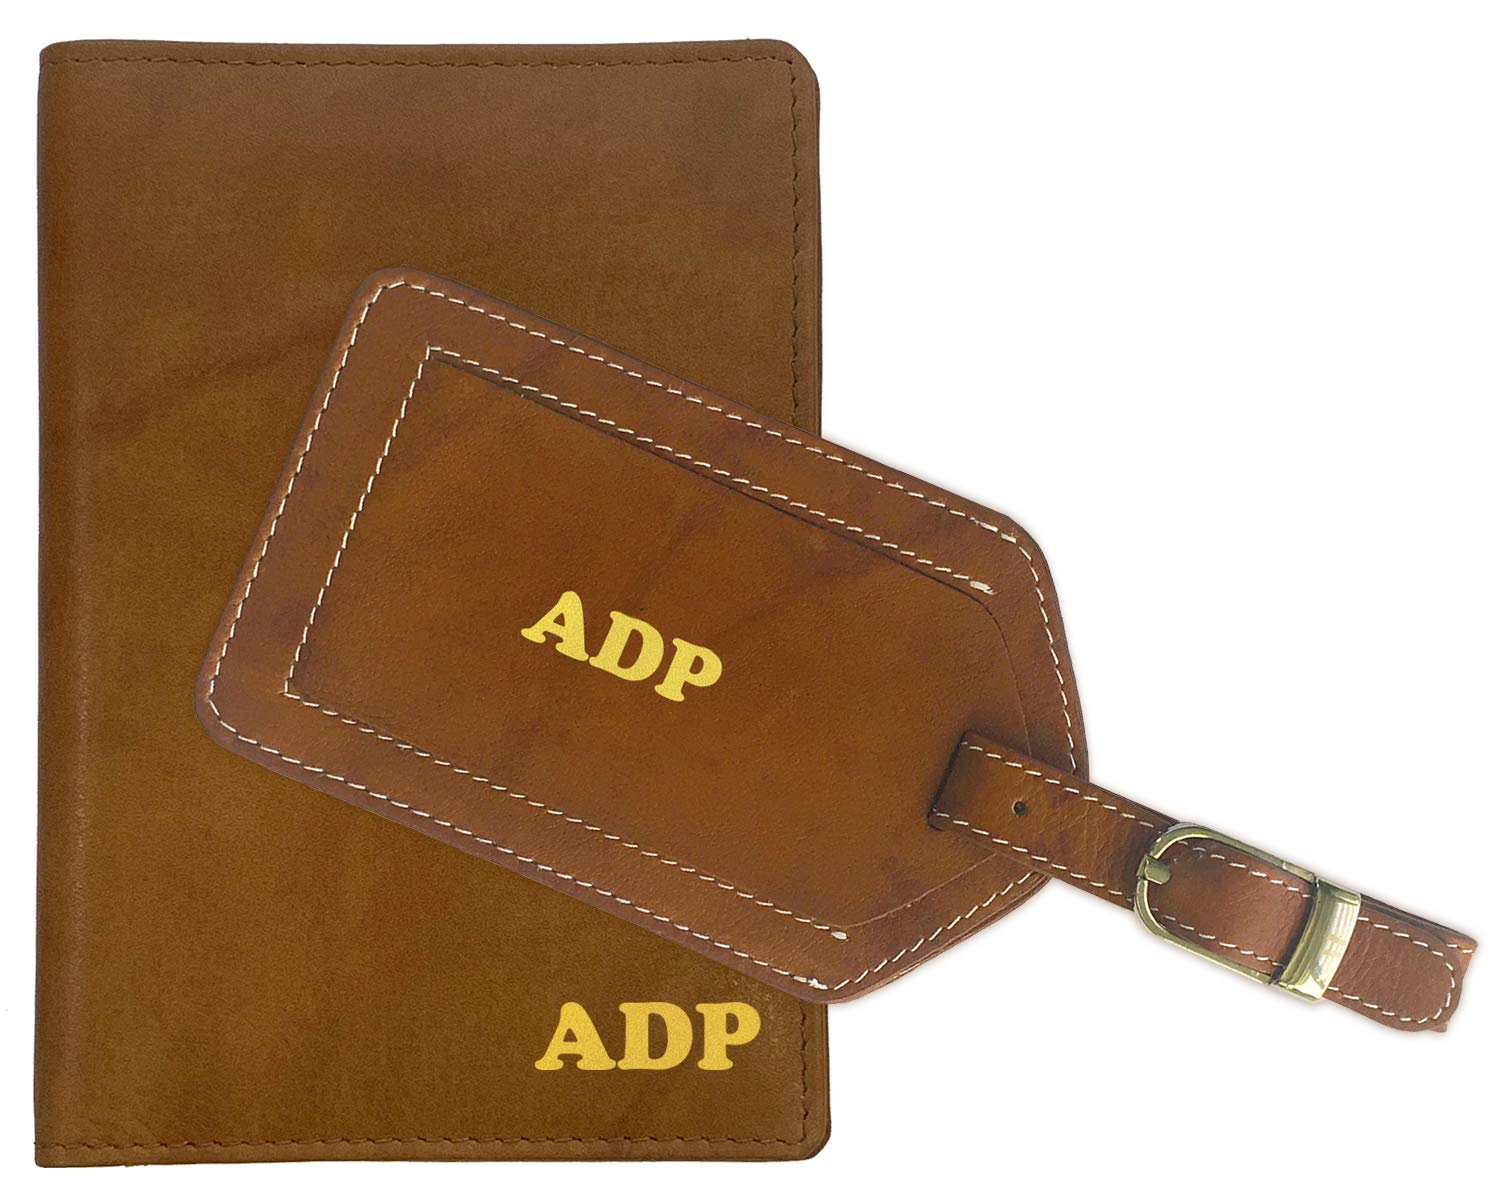 Personalized Monogrammed Antique Saddle Leather RFID Passport Wallet and Luggage Tag by 123 Cheap Checks